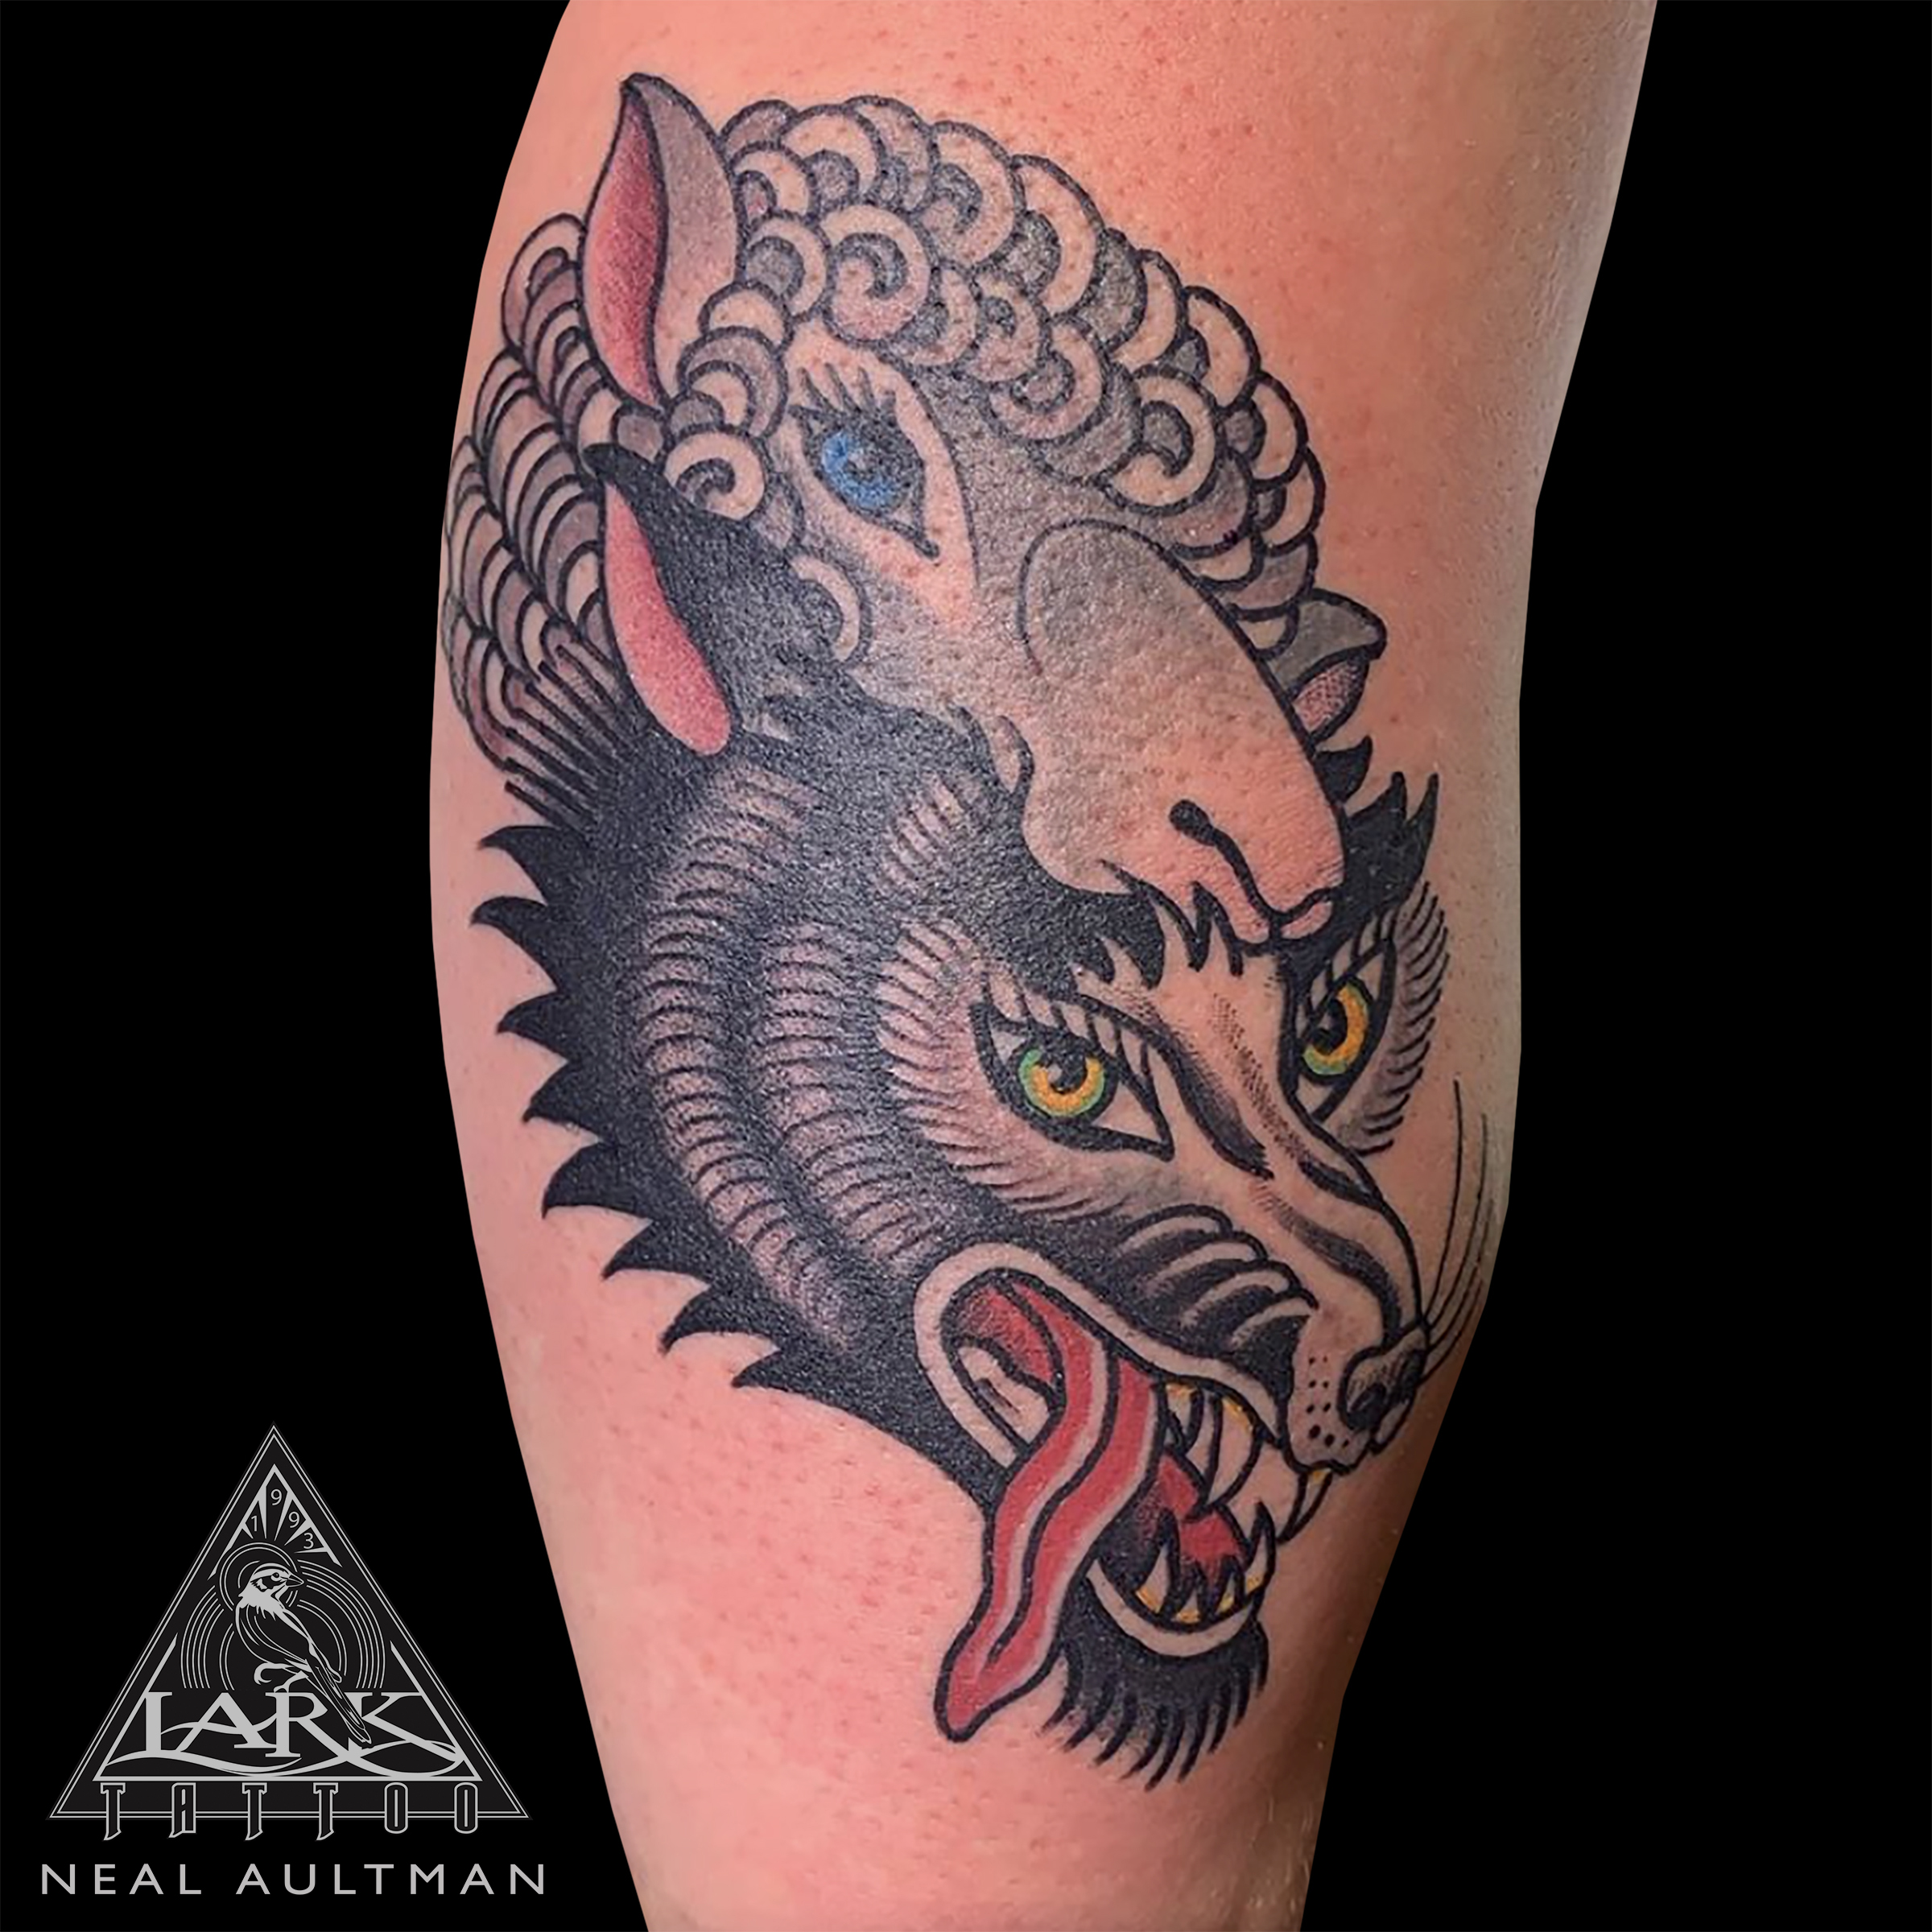 LarkTattoo, Tattoo, Tattoos, ColorTattoo, Traditional, TraditionalTattoo, ColorTraditional, TraditionalTattooer, TraditionalTattooers, TraditionalTattooArtist, TraditionalTattooArtists, ColorTraditionalTattoo, Animal, AnimalTattoo, Wolf, WolfTattoo, WolfInSheepsClothing, WolfInSheepsClothingTattoo, BreakfastClubTattoo, BreakfastClubTattooBook, BreakfastClubTraditiionalTattoo, BreakfastClubTraditiionalTattoos, TattooArtist, Tattoist, Tattooer, LongIslandTattooArtist, LongIslandTattooer, LongIslandTattoo, TattooOfTheDay, Tat, Tats, Tatts, Tatted, Inked, Ink, TattooInk, AmazingInk, AmazingTattoo, BodyArt, LarkTattooWestbury, Westbury, LongIsland, NY, NewYork, USA, Art, Tattedup, InkedUp, LarkTattoos